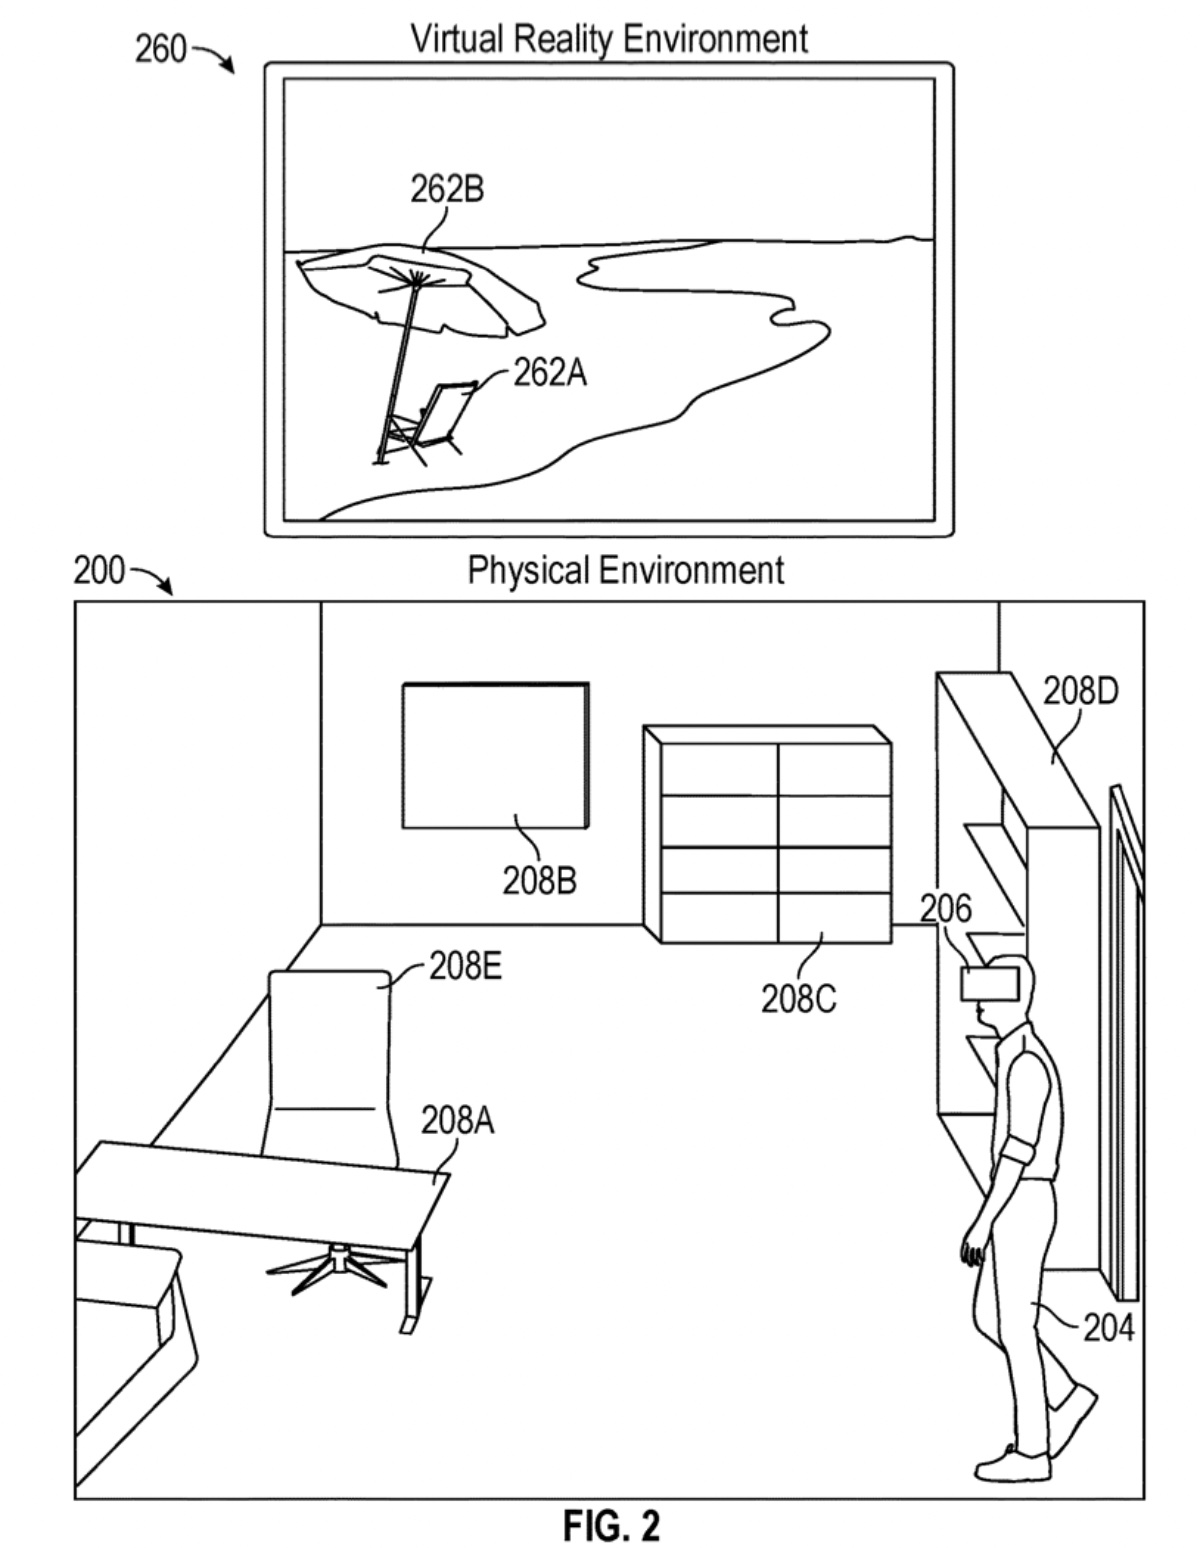 Apple wants Apple Glasses users to be safely aware of their physical boundaries